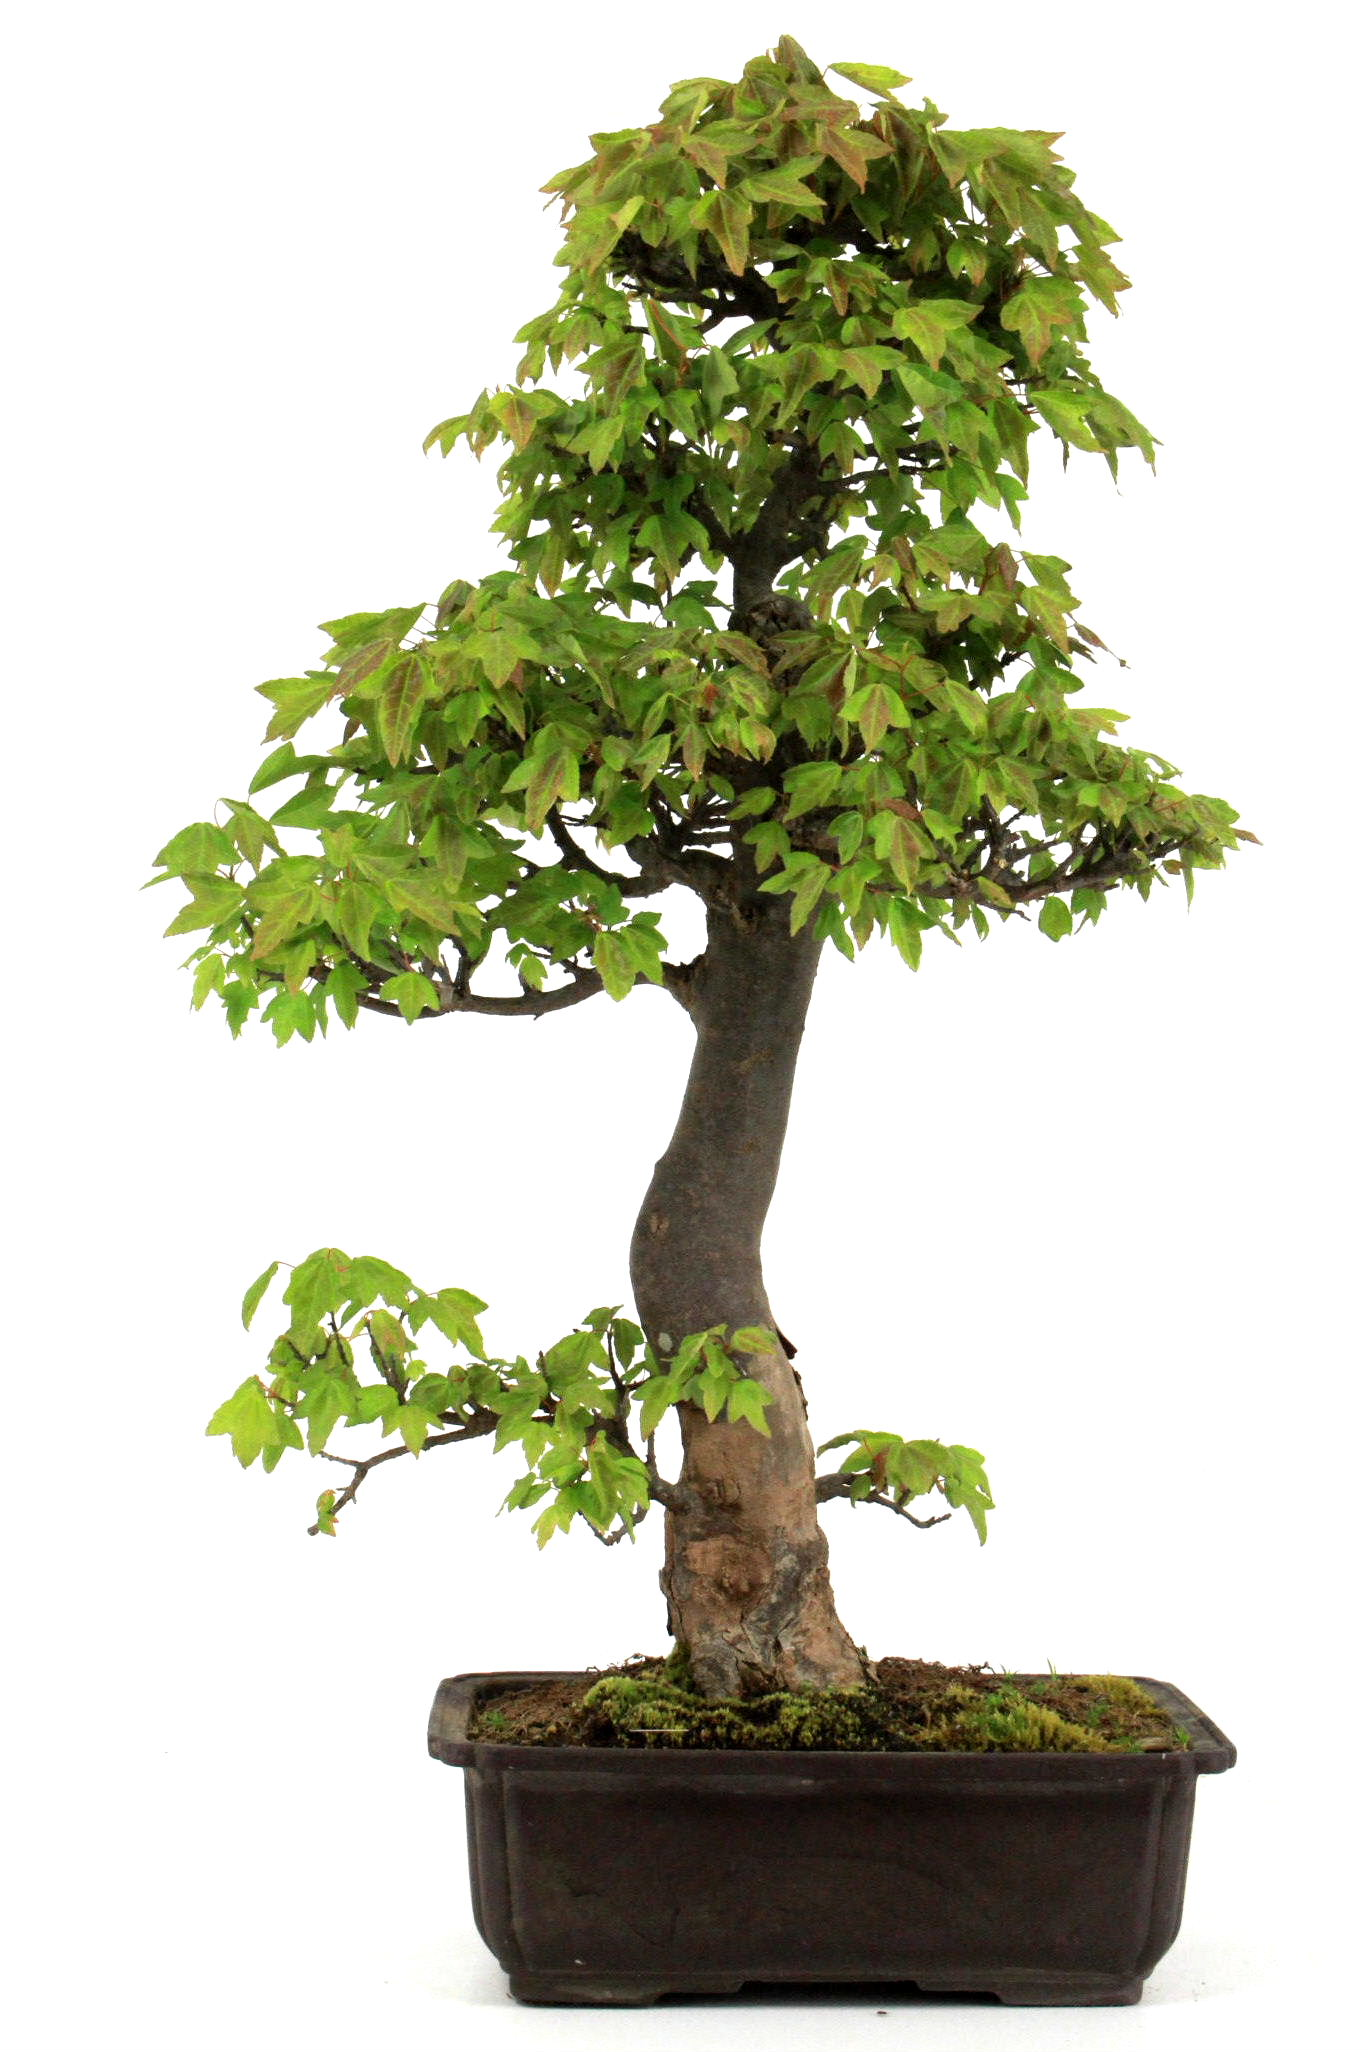 Bonsai dreispitz ahorn 66 cm 2613 bei oyaki bonsai kaufen for Bonsai onlineshop